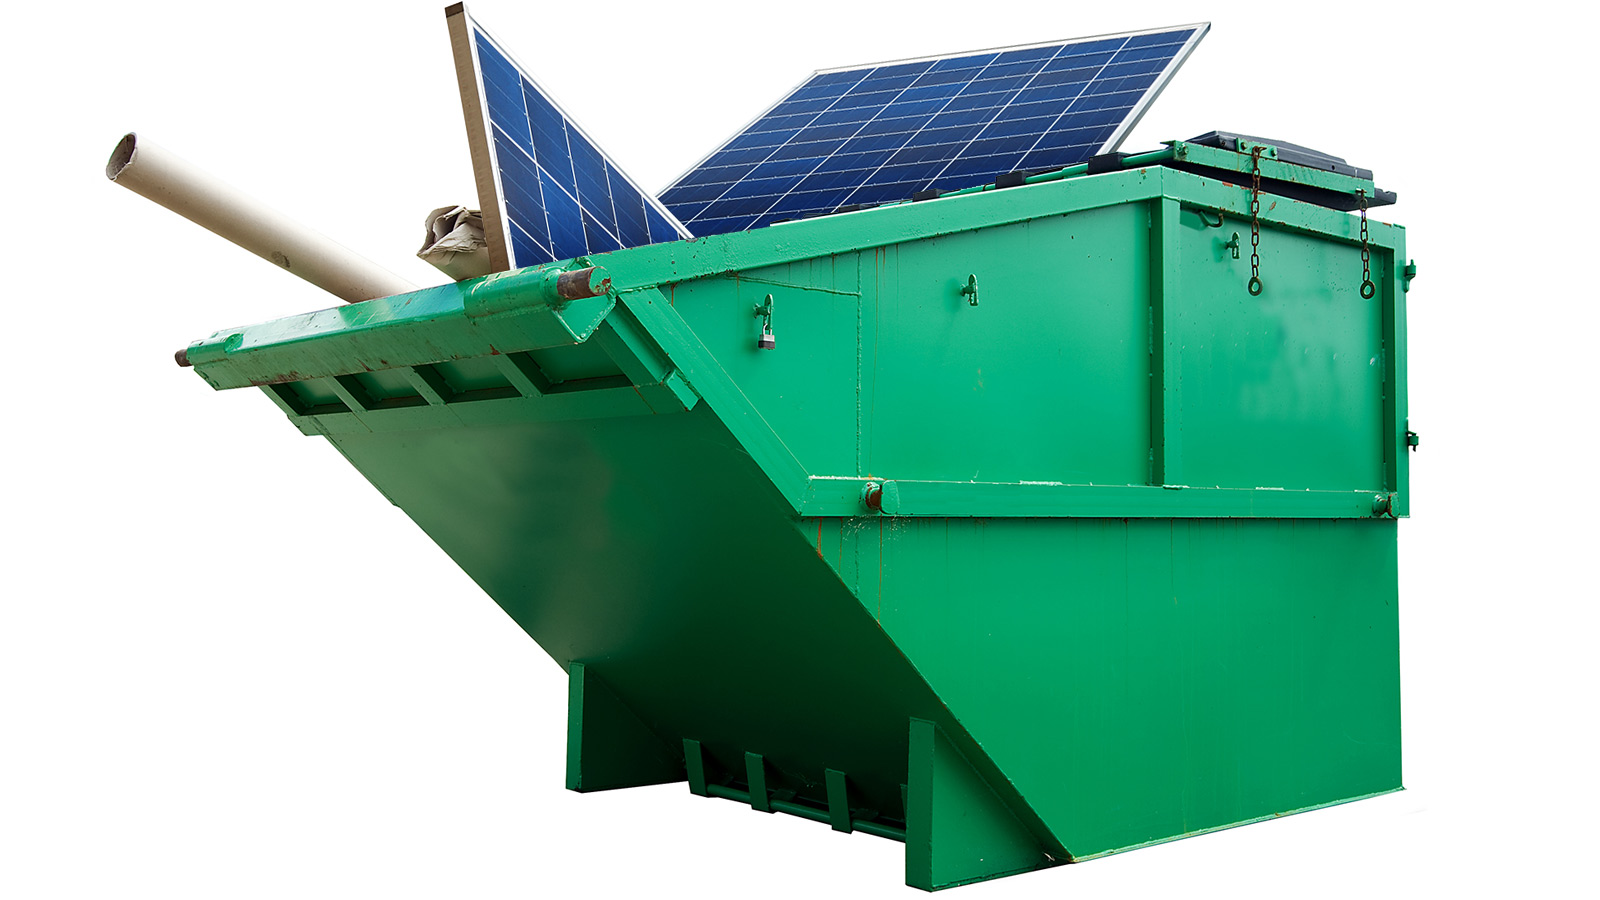 Solar panels in dumpster